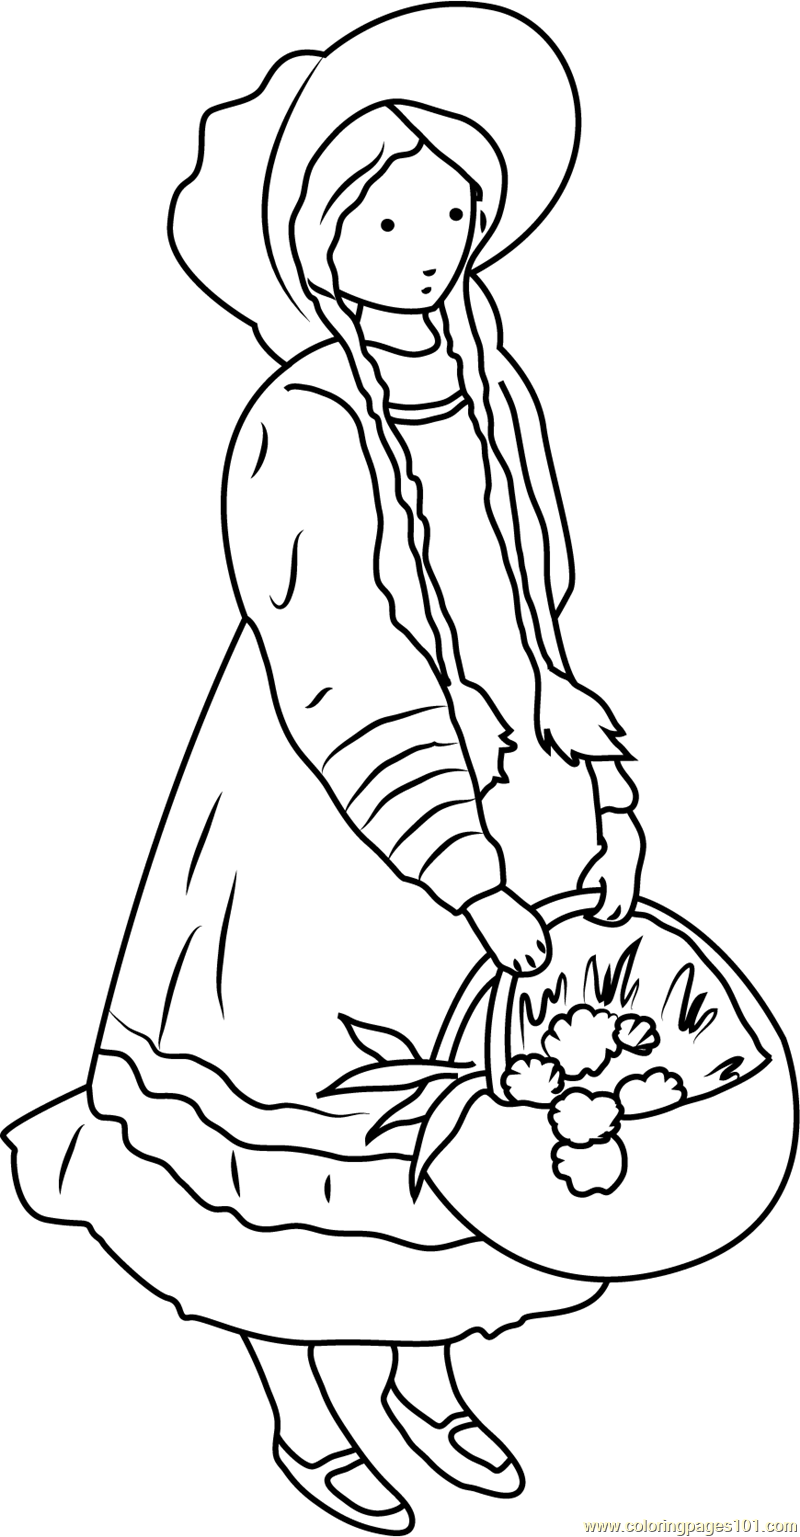 Holly Hobbie with Flower Basket Coloring Page